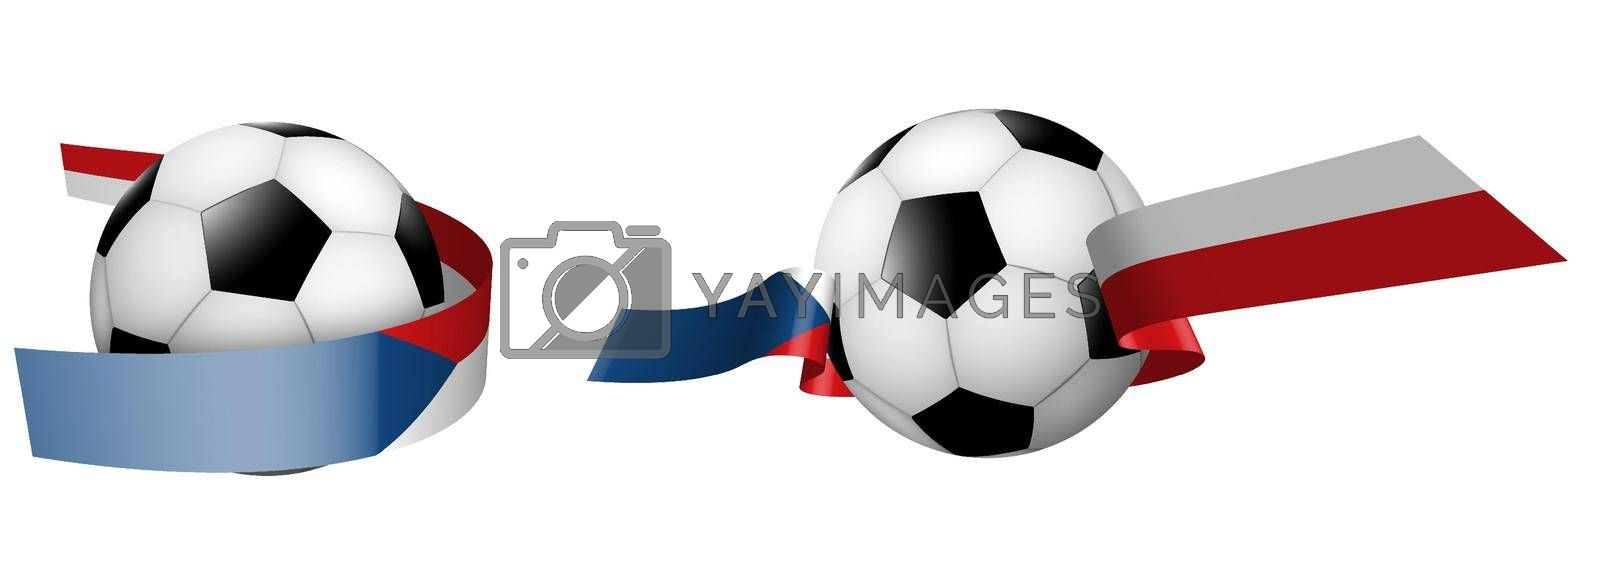 balls for soccer, classic football in ribbons with colors of Czech Republic flag. Design element for football competitions. Czech national team. Isolated vector on white background